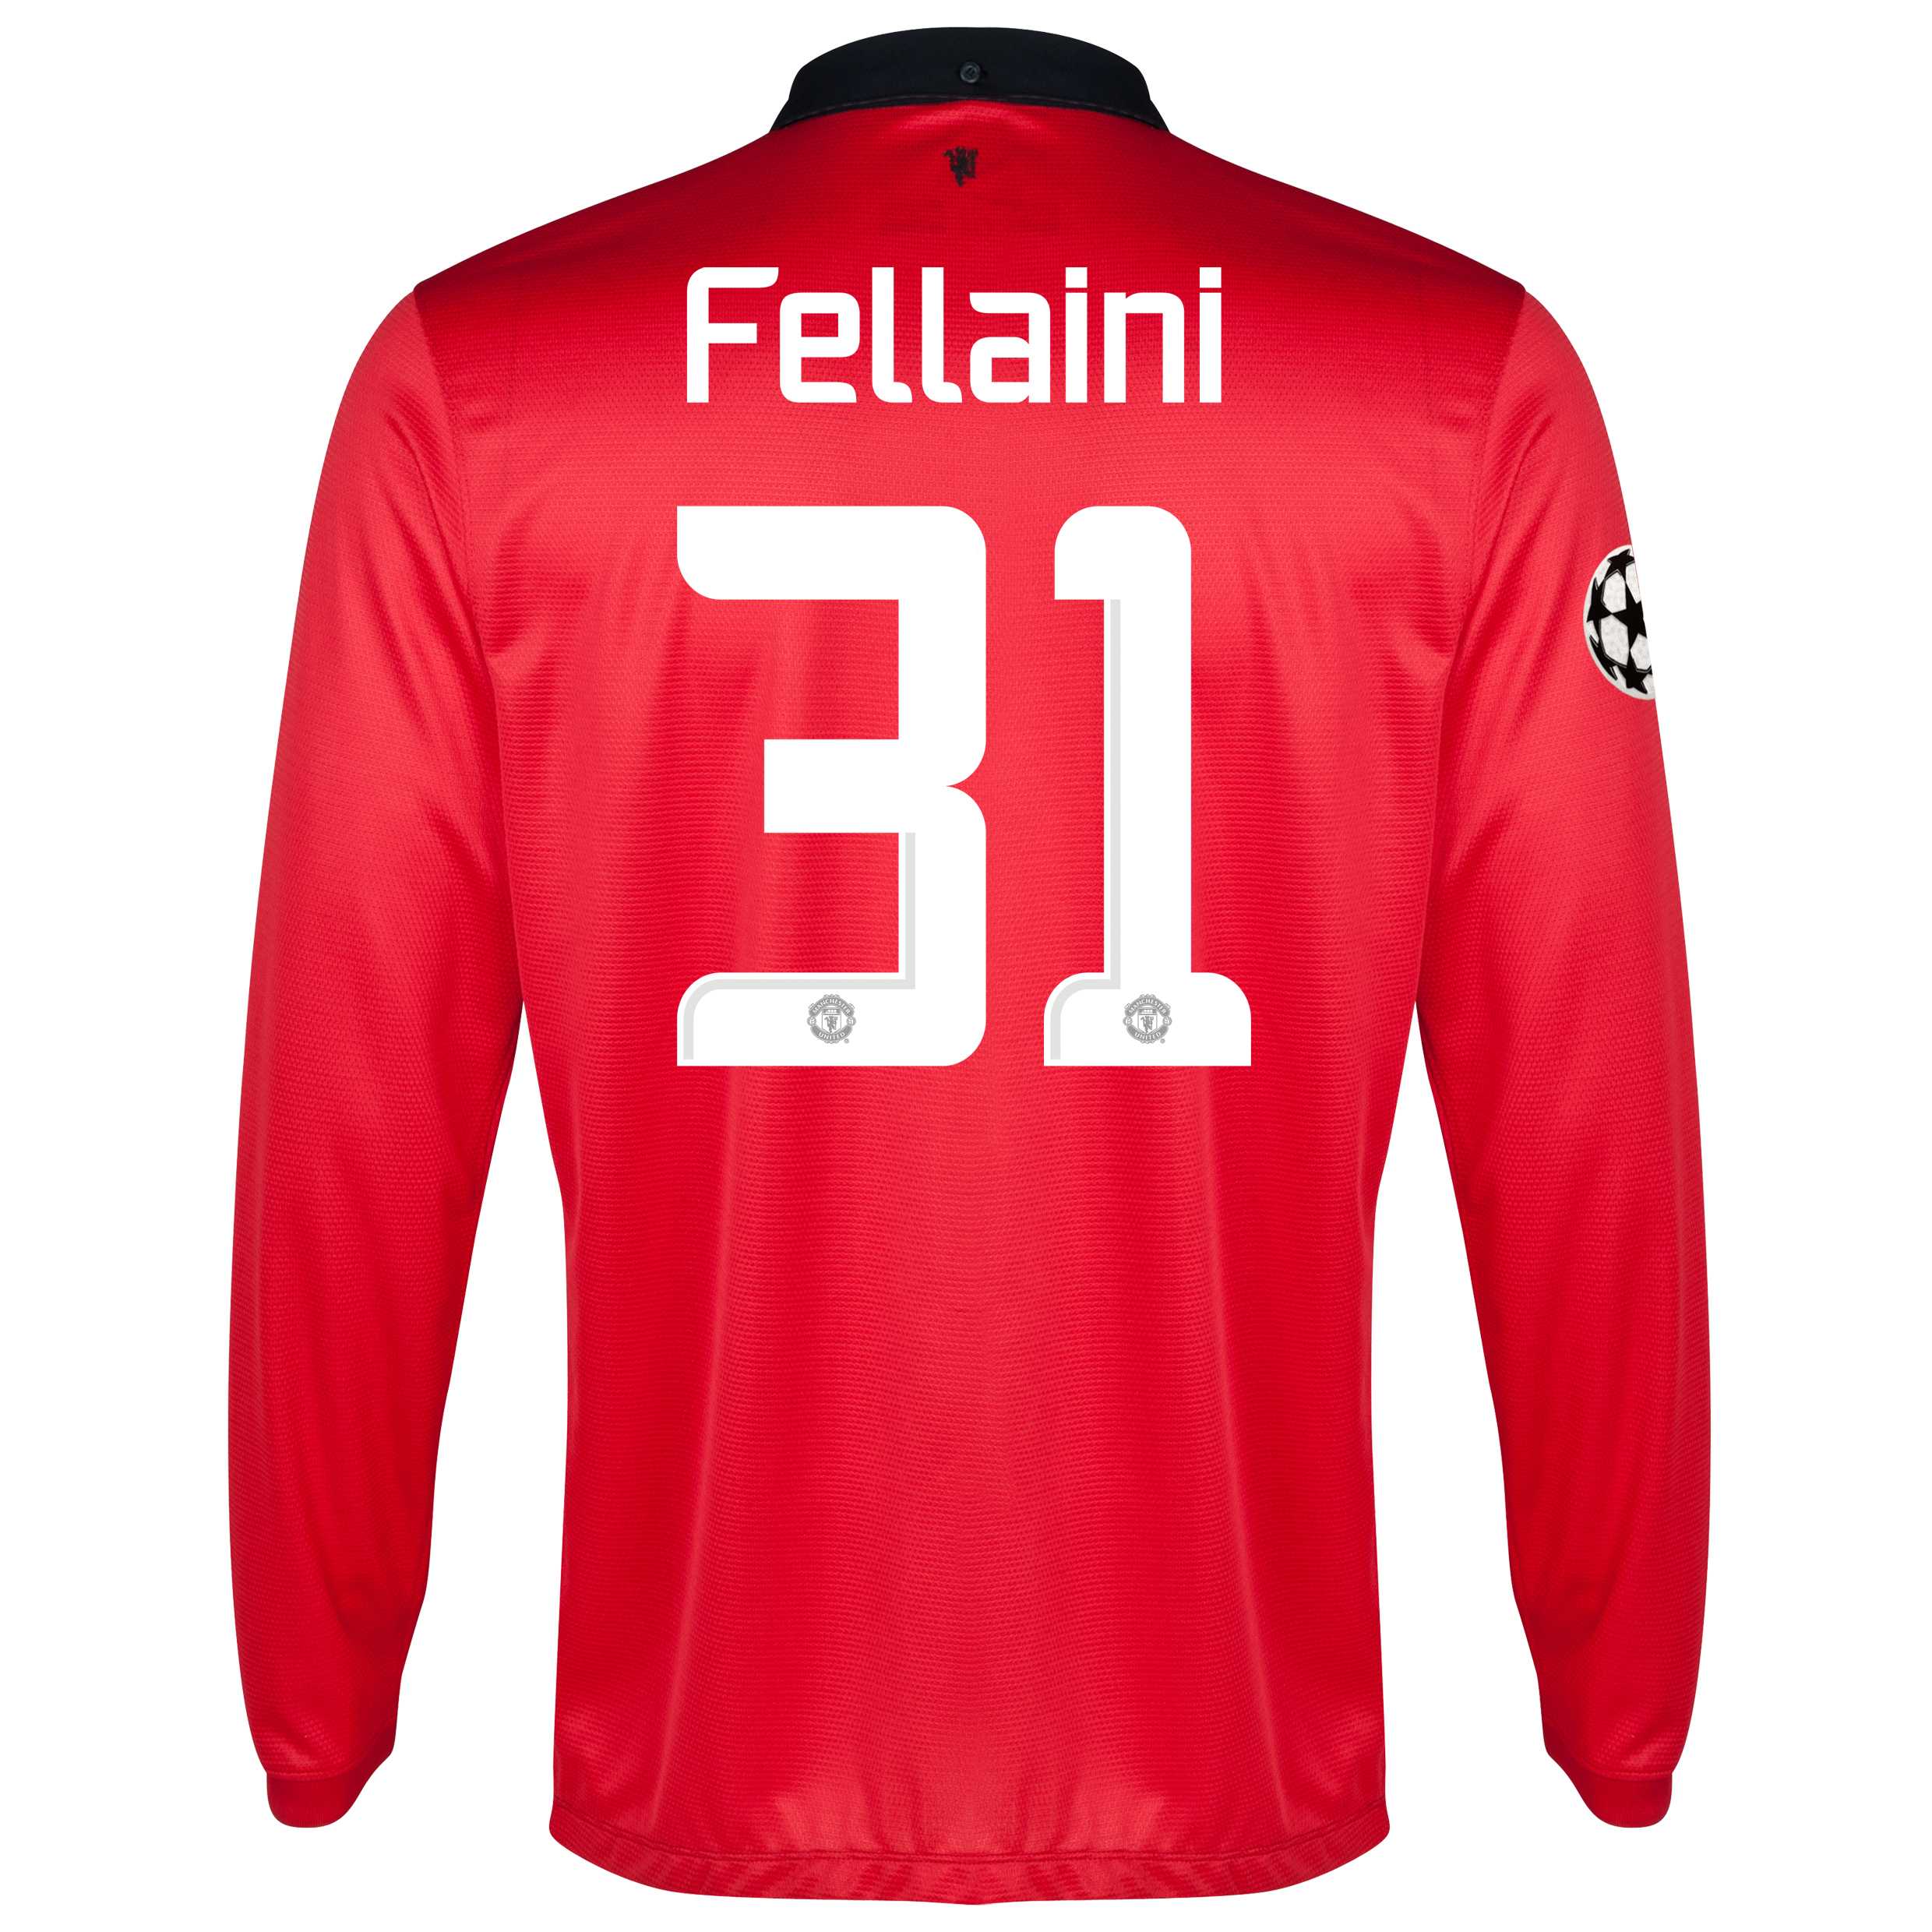 Manchester United UEFA Champions League Home Shirt 2013/14 - Long Sleeved - Kids with Fellaini 31 printing